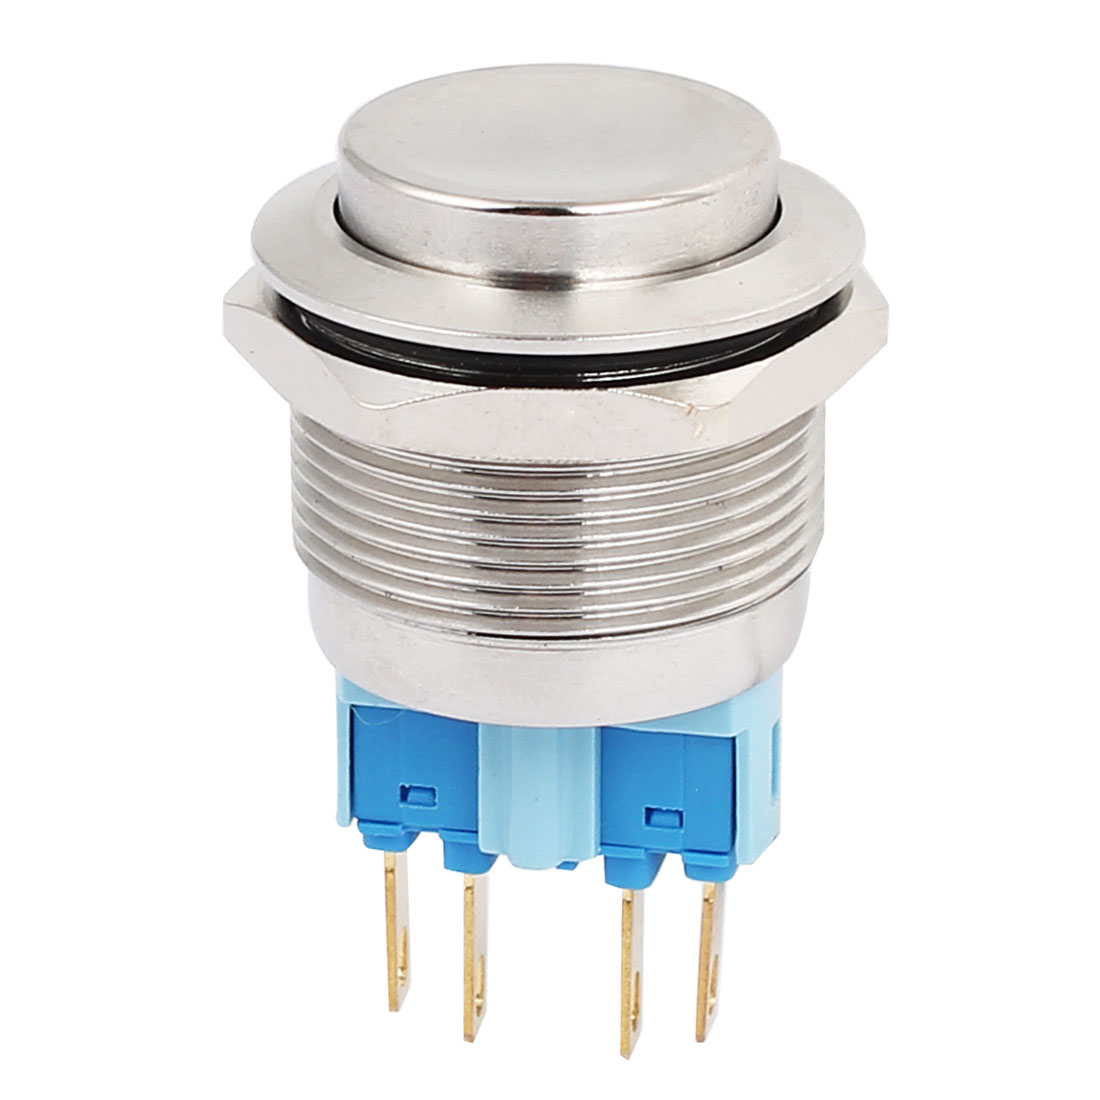 5A 250VAC 22mm DPST Momentary Metal Pushbutton Switch Raised Head Silver Tone